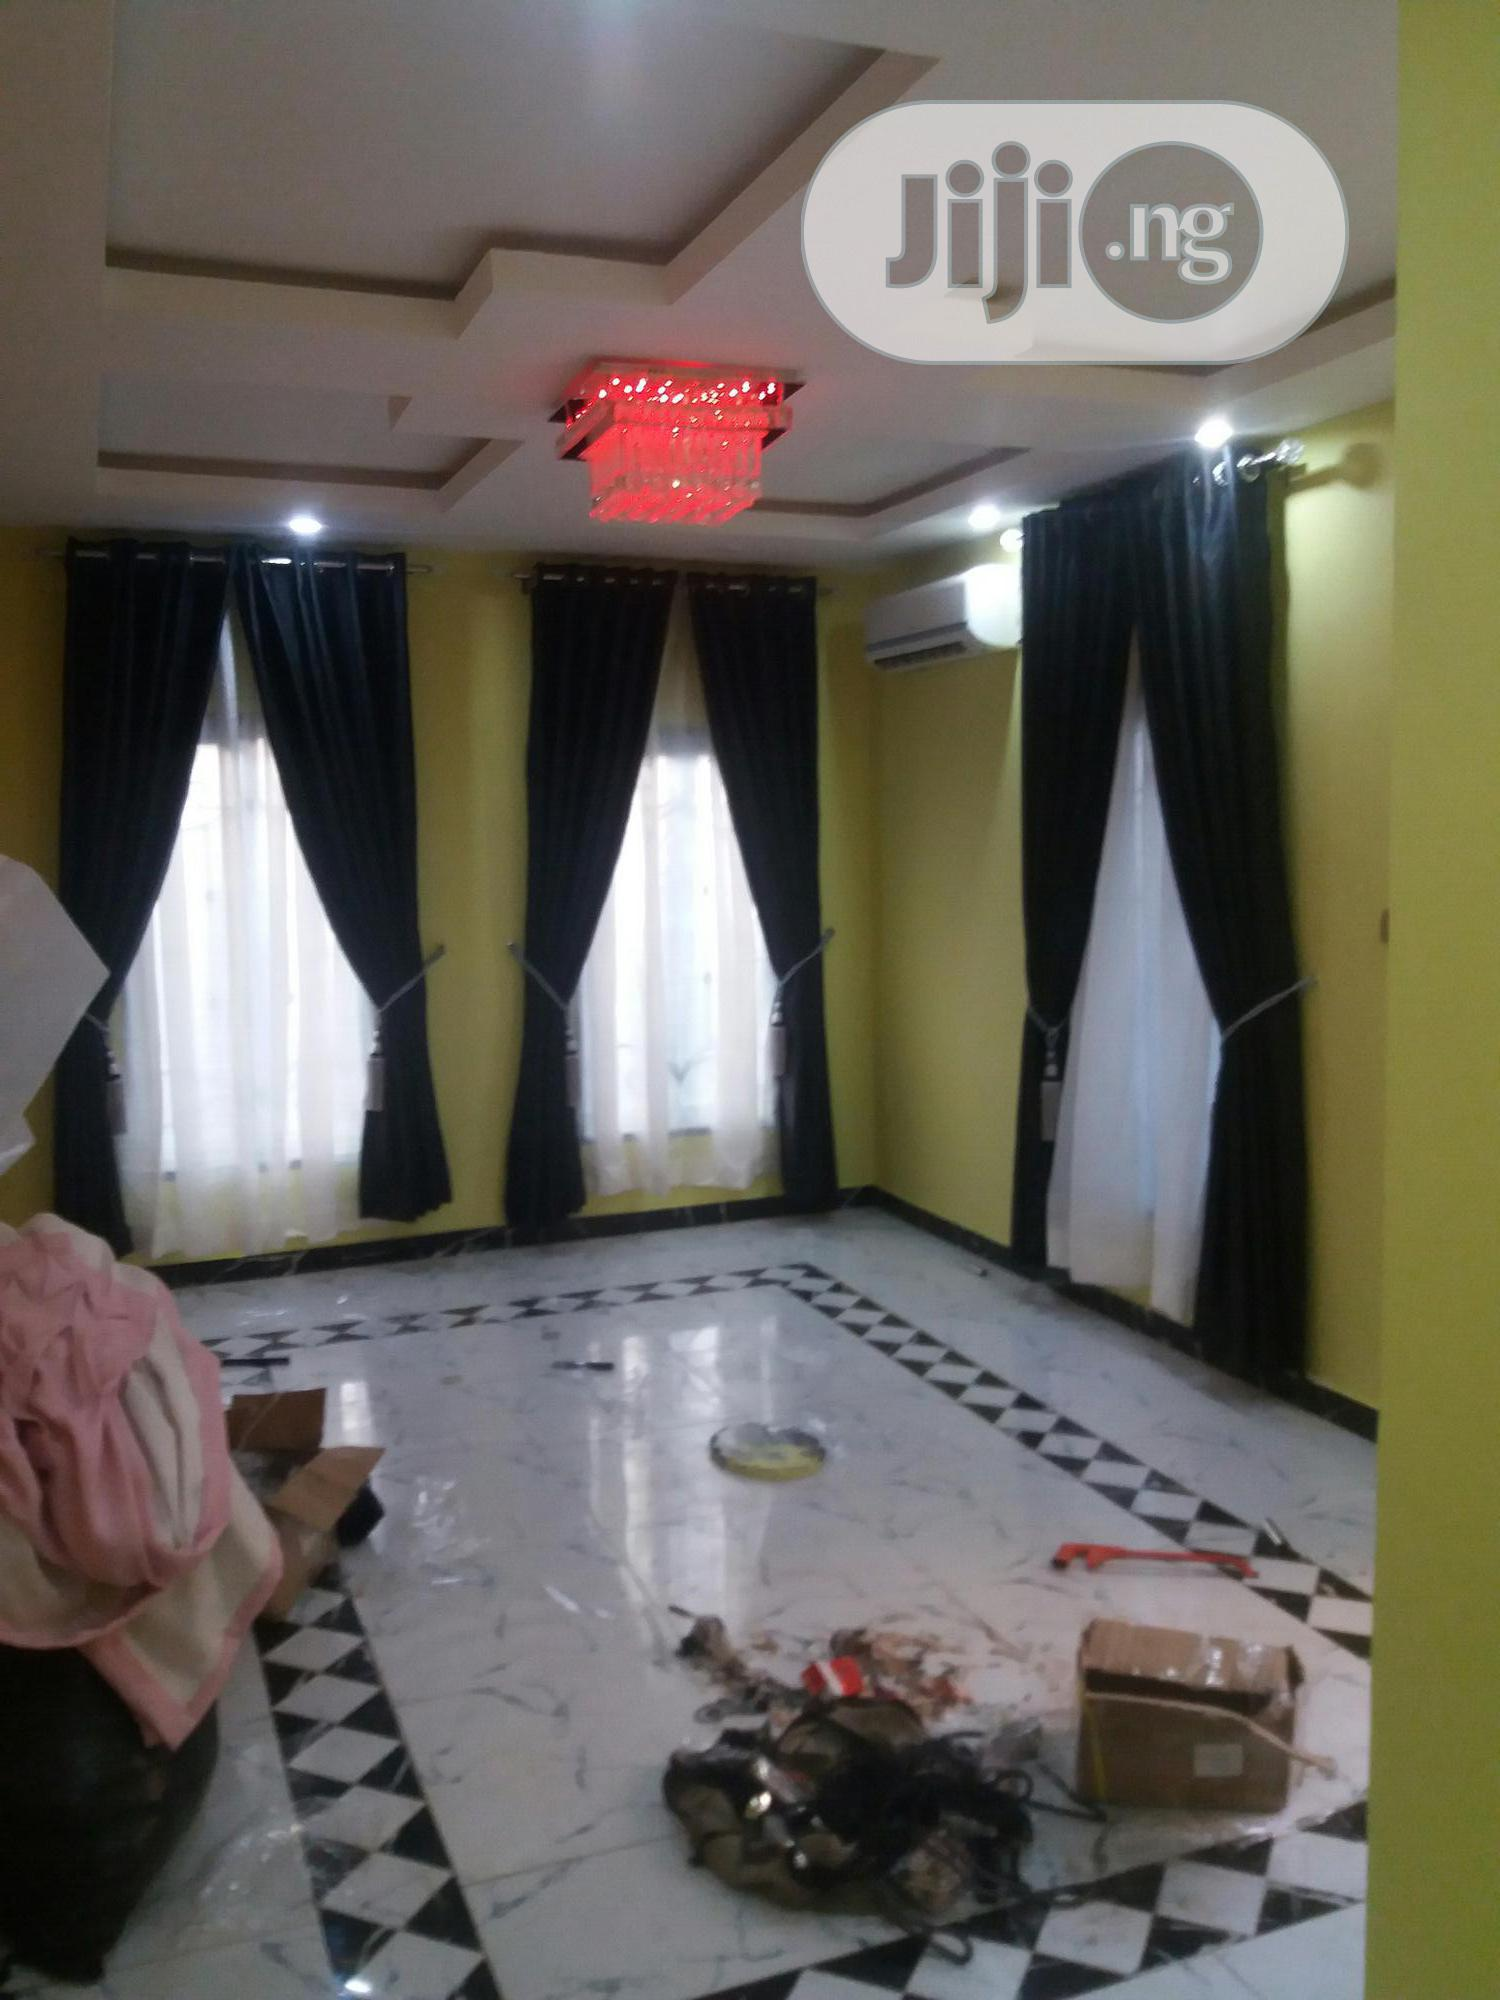 Executive Curtains/Windowblinds/Duvet/Wallpaper/3D Wallpanel/Painting | Building & Trades Services for sale in Ajah, Lagos State, Nigeria